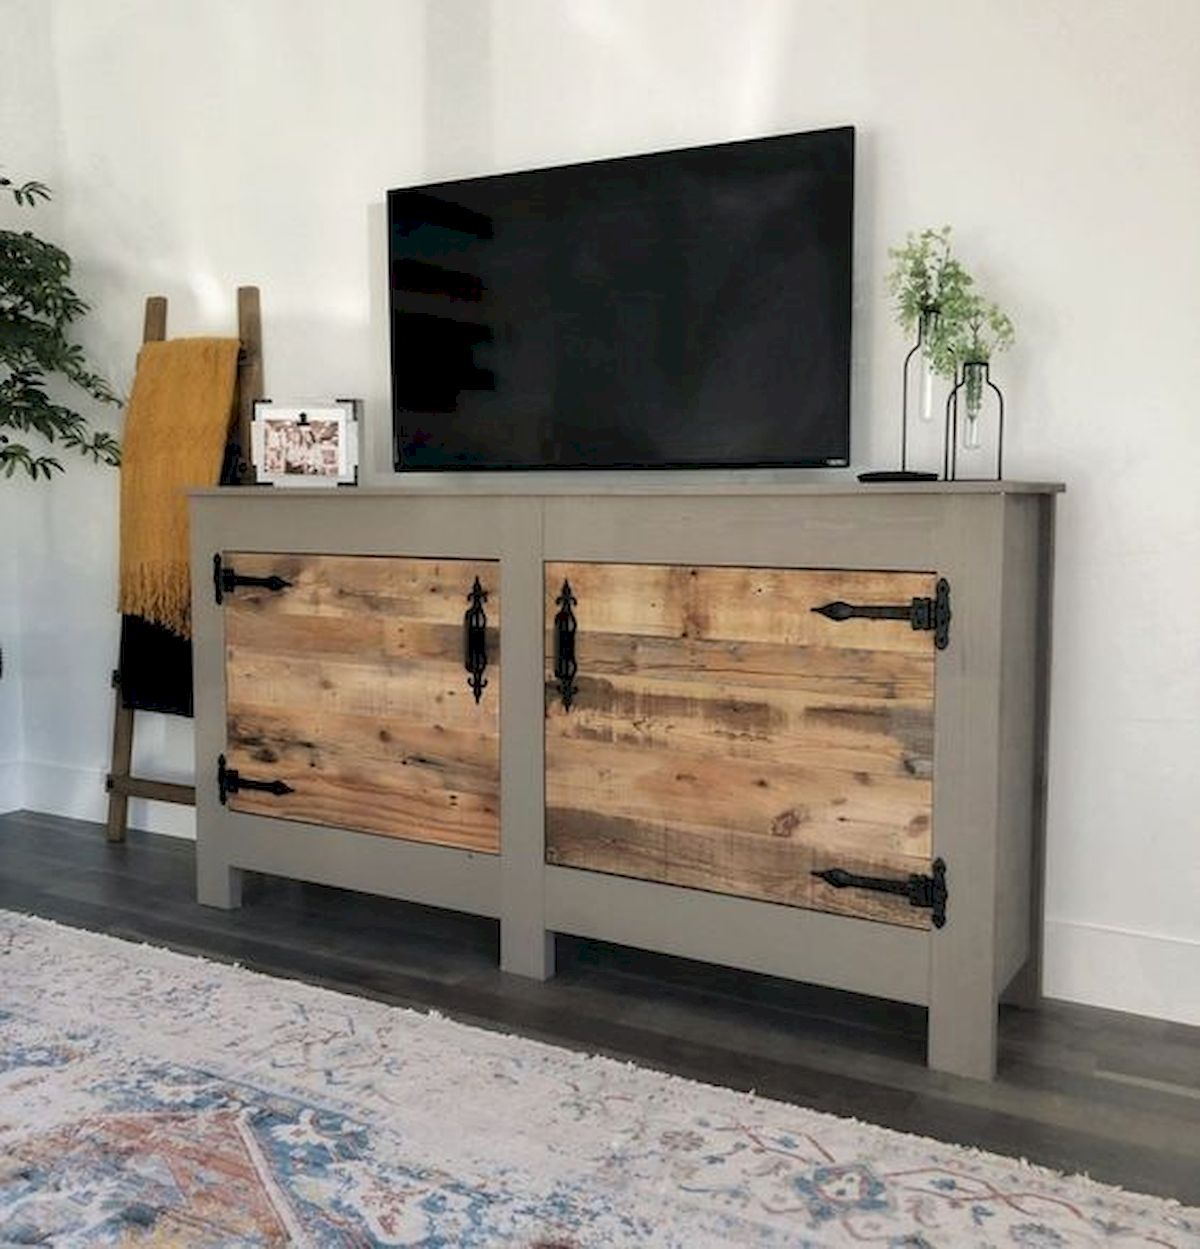 45 Easy and Cheap DIY Wood Furniture Ideas for Small House (39)